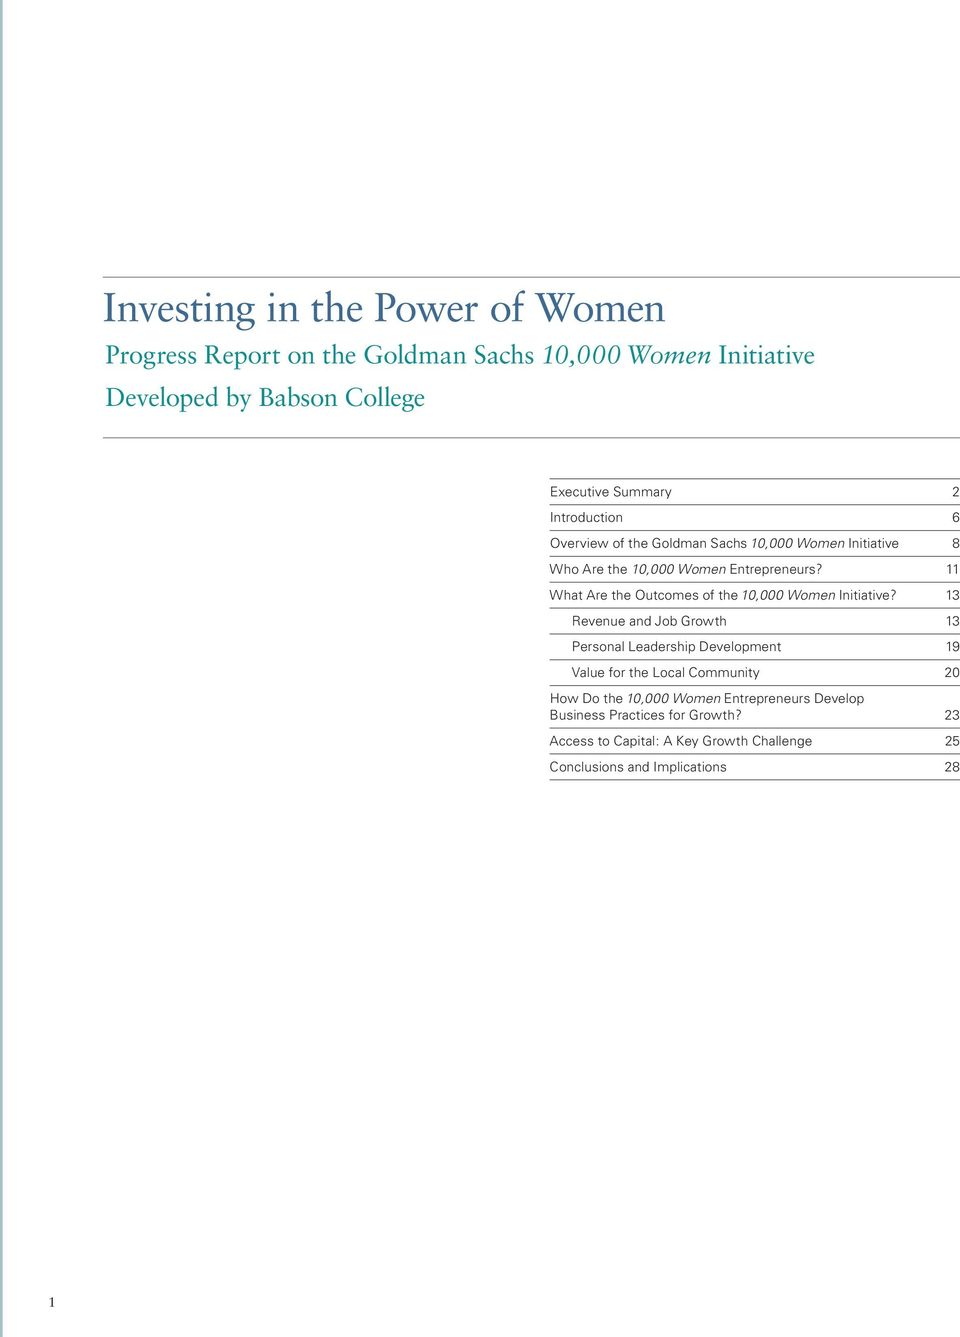 11 What Are the Outcomes of the 10,000 Women Initiative?